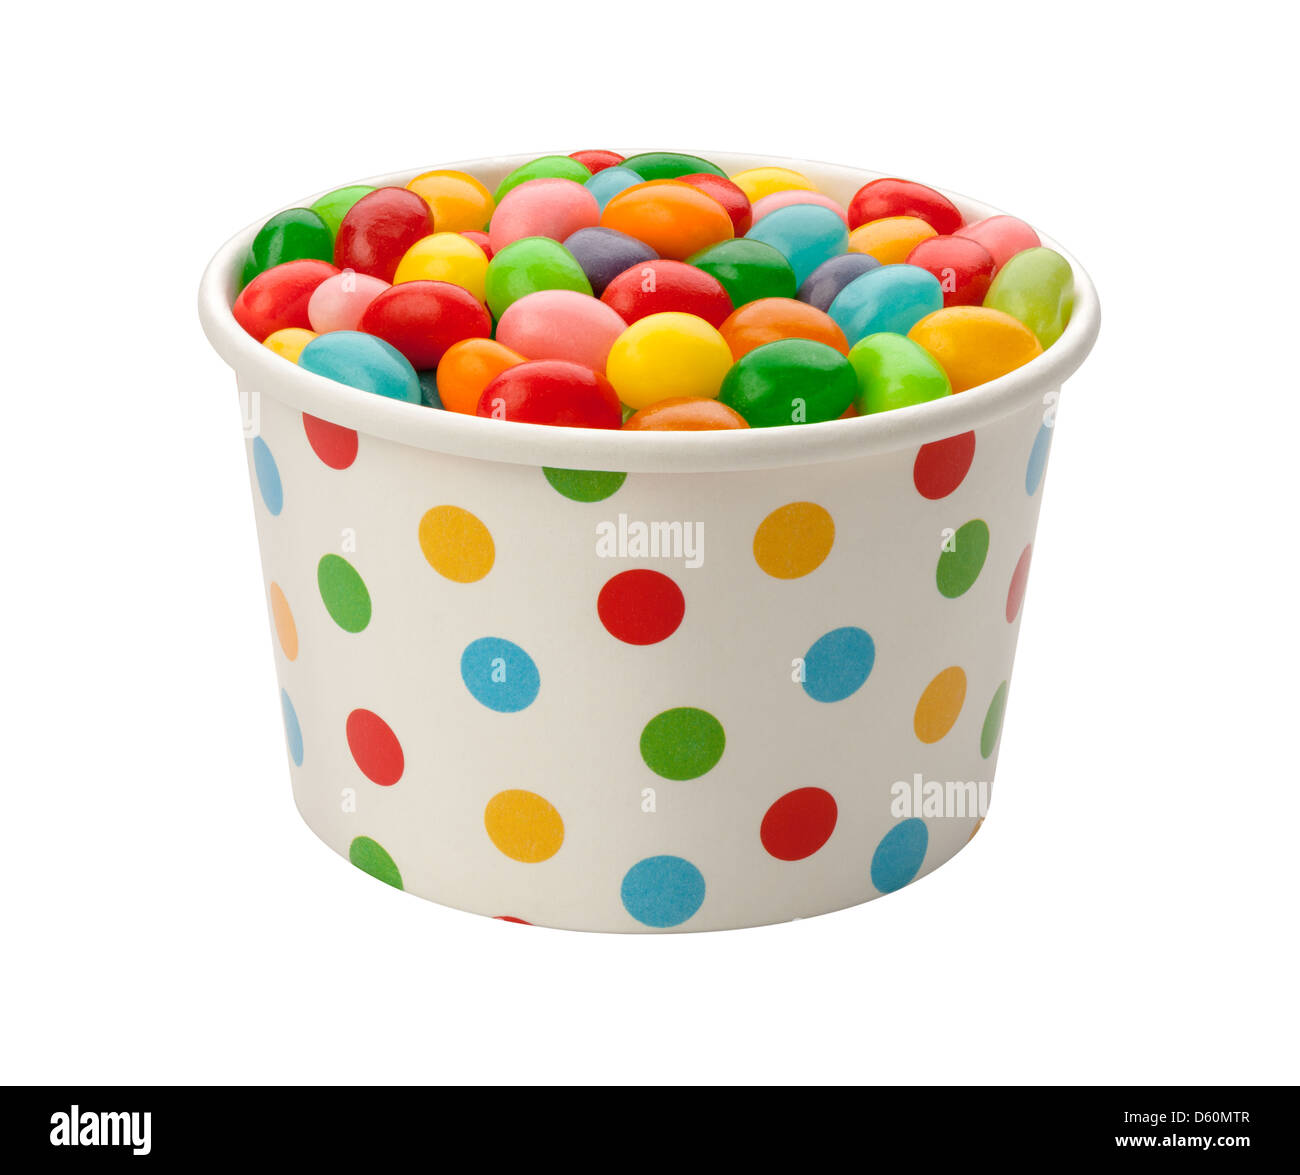 Jellybeans in a paper cup, isolated on white. - Stock Image